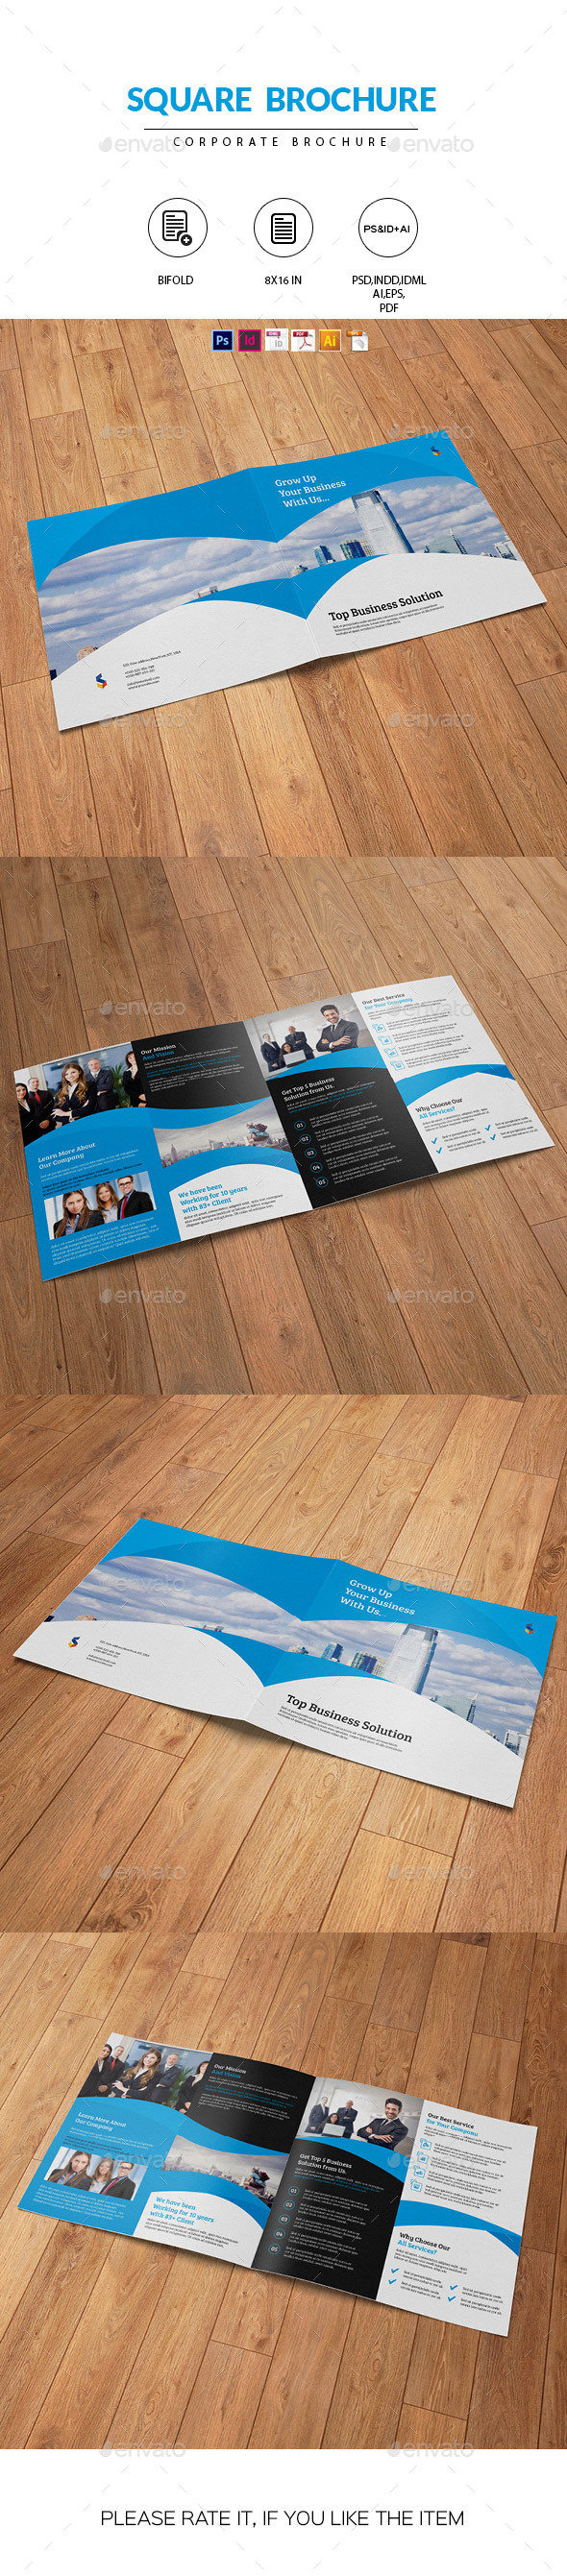 Square Brochure for Business - Corporate Brochures